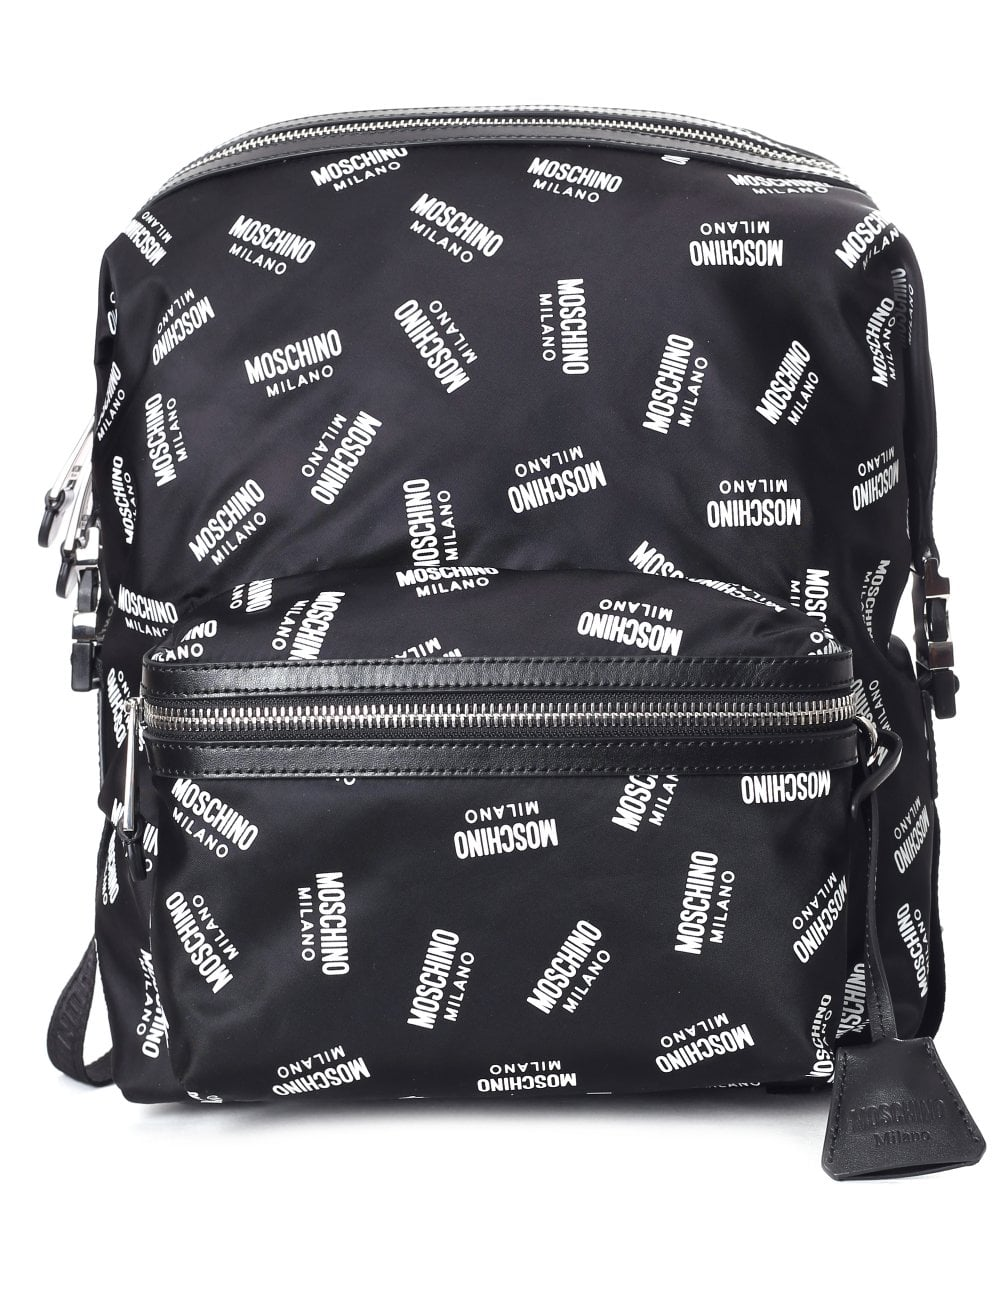 110a78a6ed63 Moschino Couture Women s All Over Logo Backpack Black